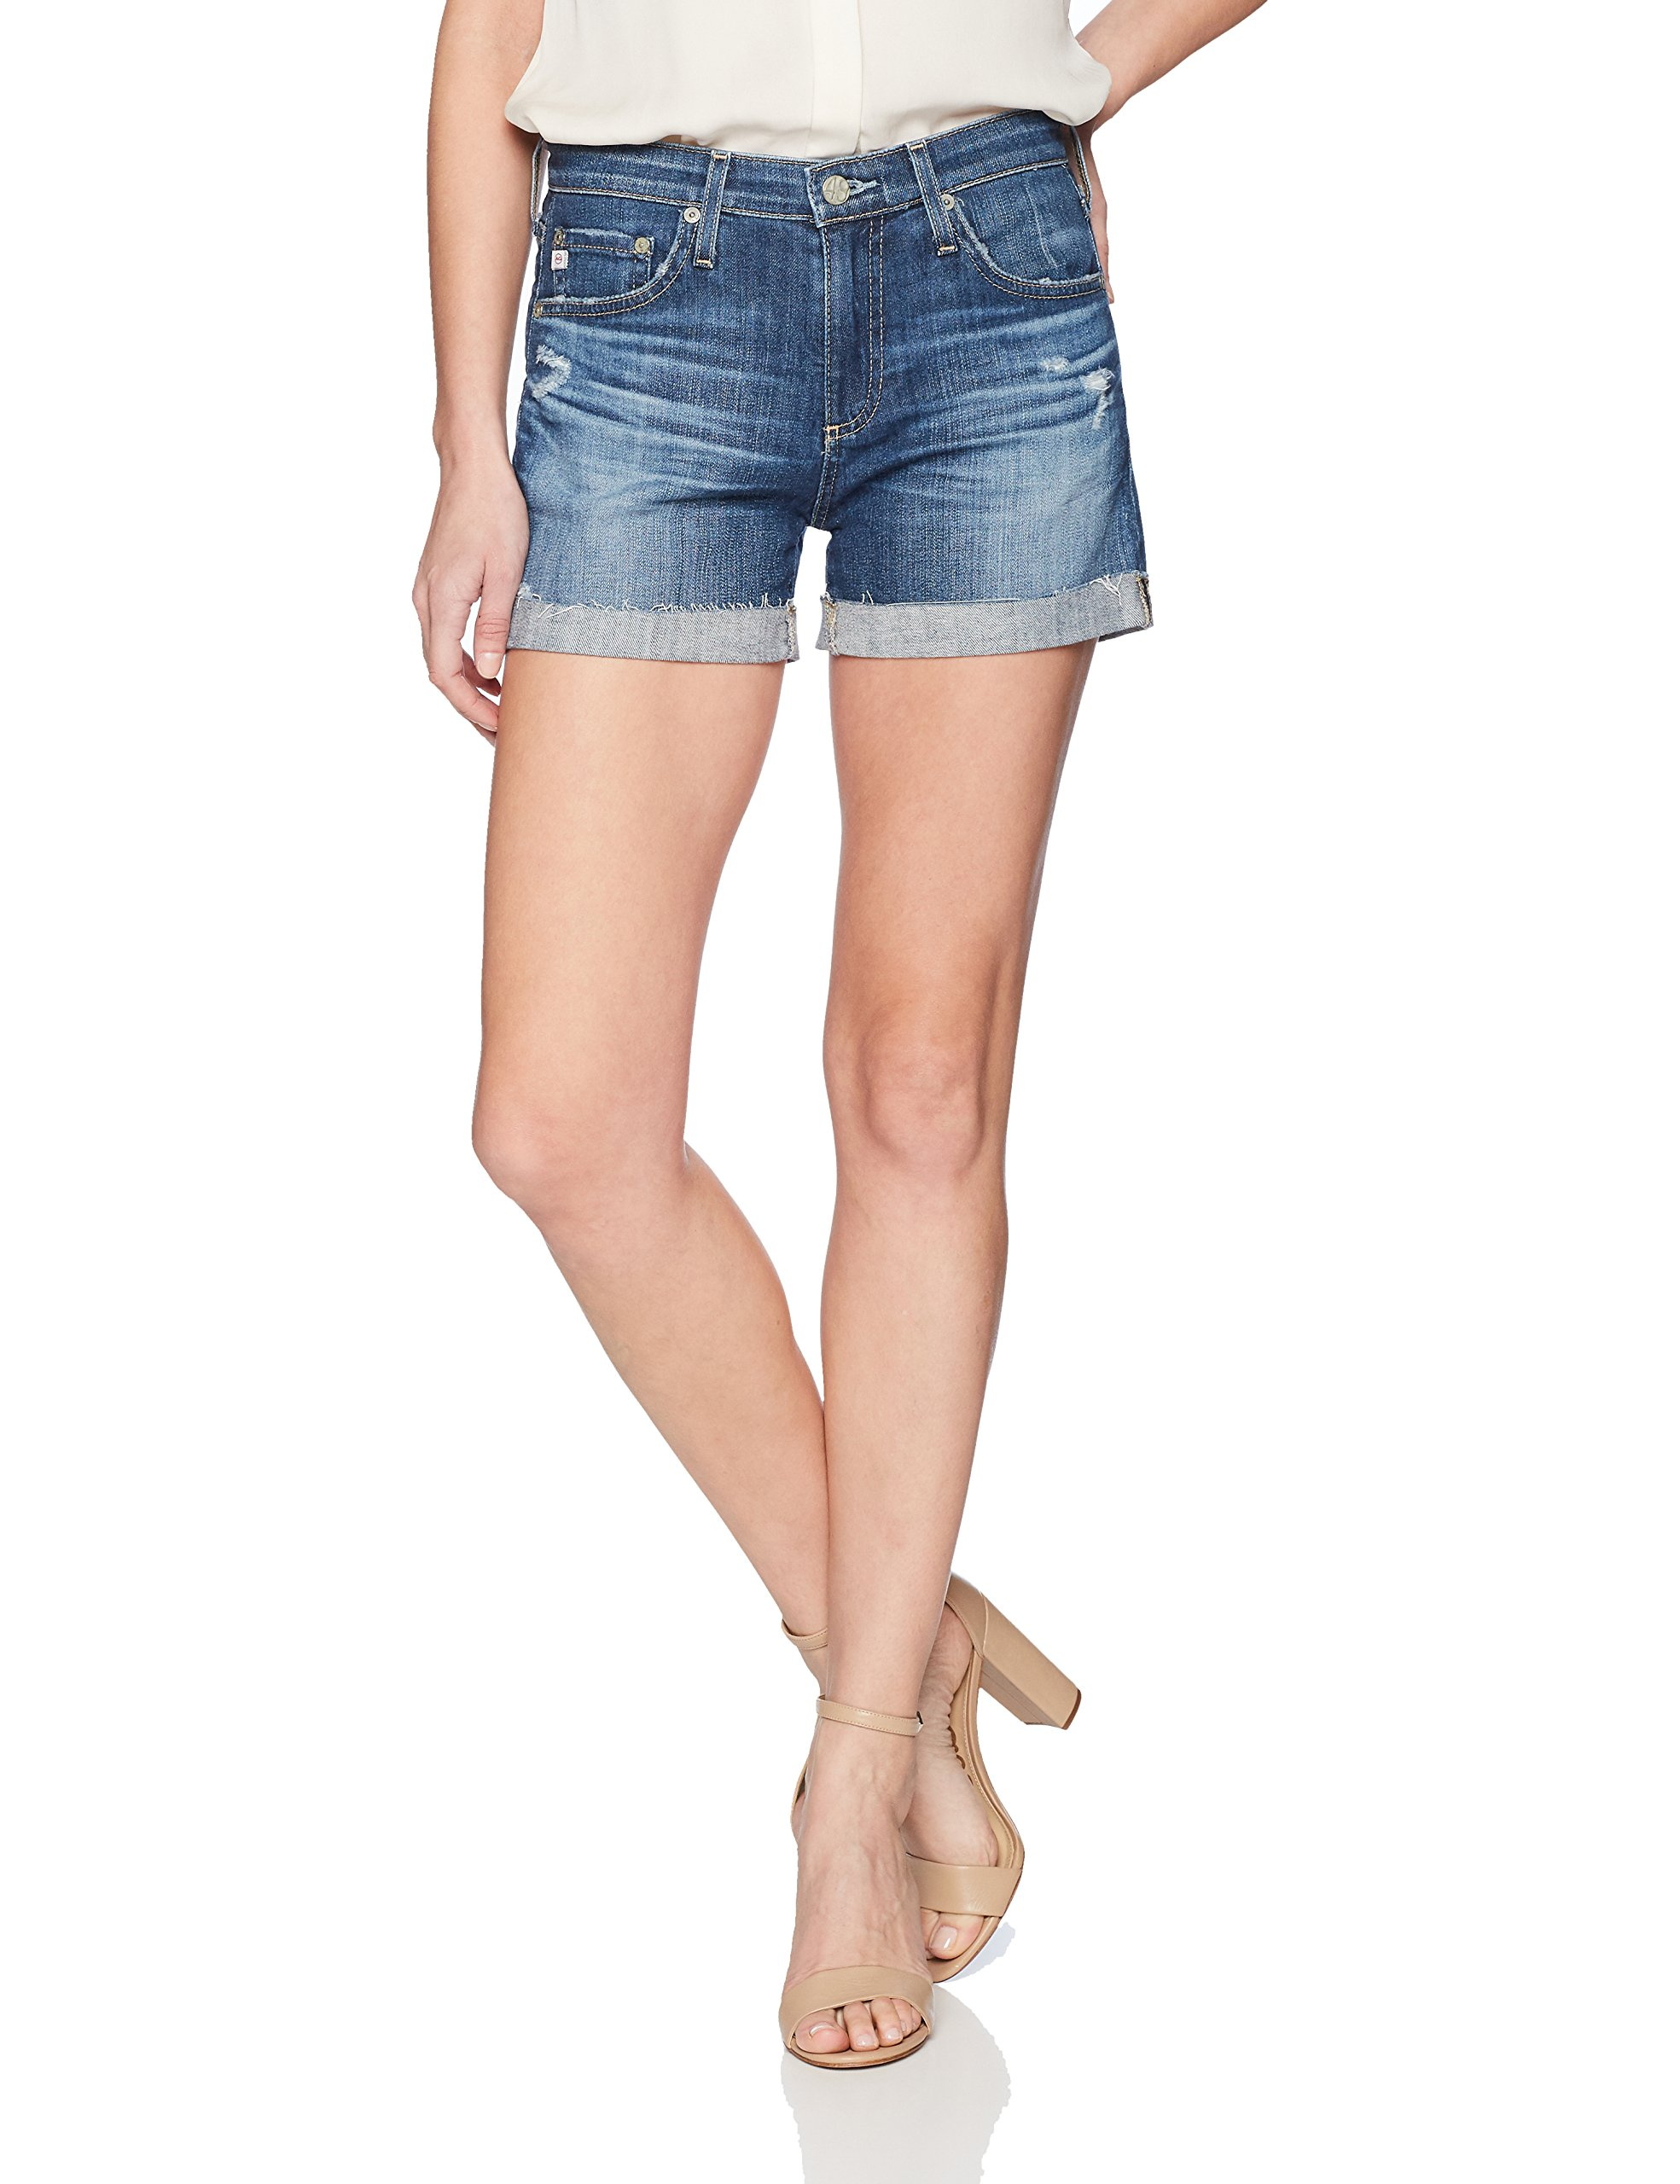 AG Adriano Goldschmied Women's Hailey Roll-up Denim Short, Years Teal Sky, 26